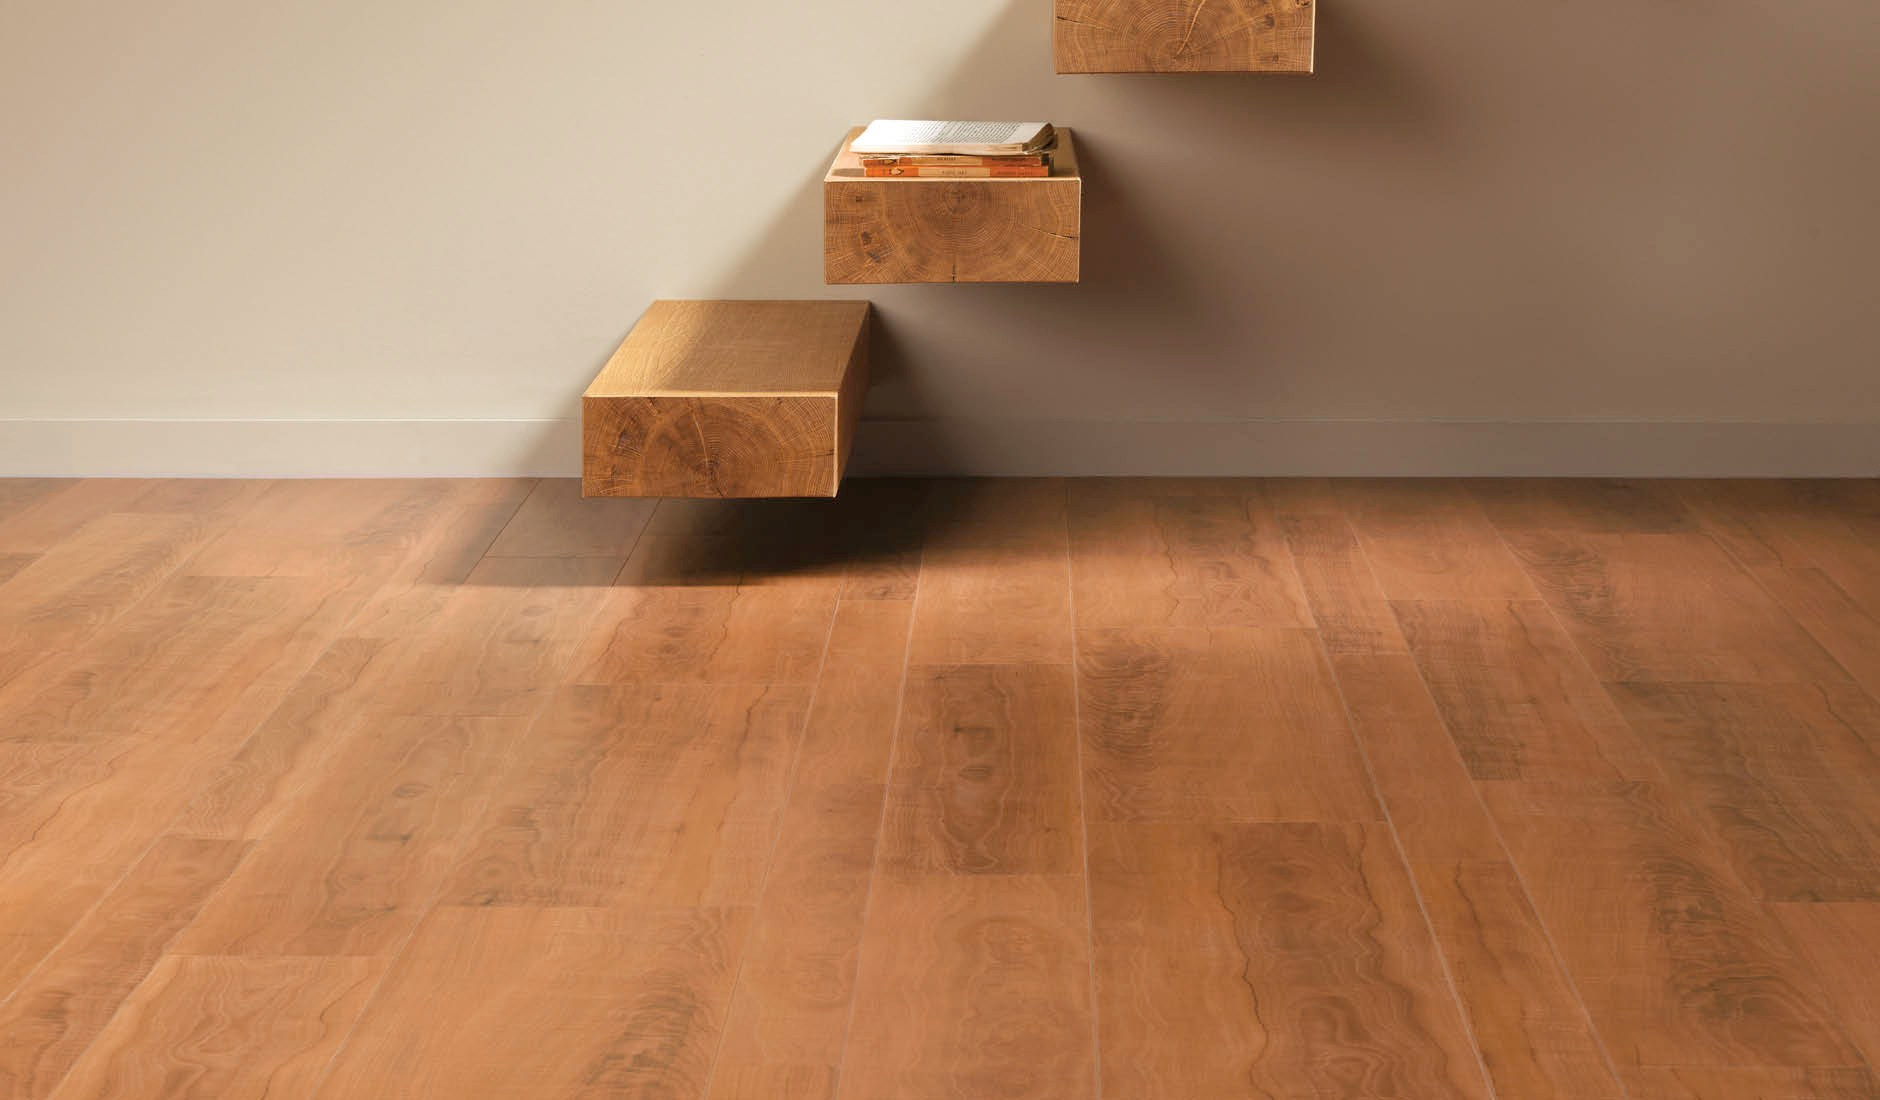 Wooden Floor By Konecto Matched With White Wall And Wooden Stair Step Without Railing For Home Interior Design Ideas